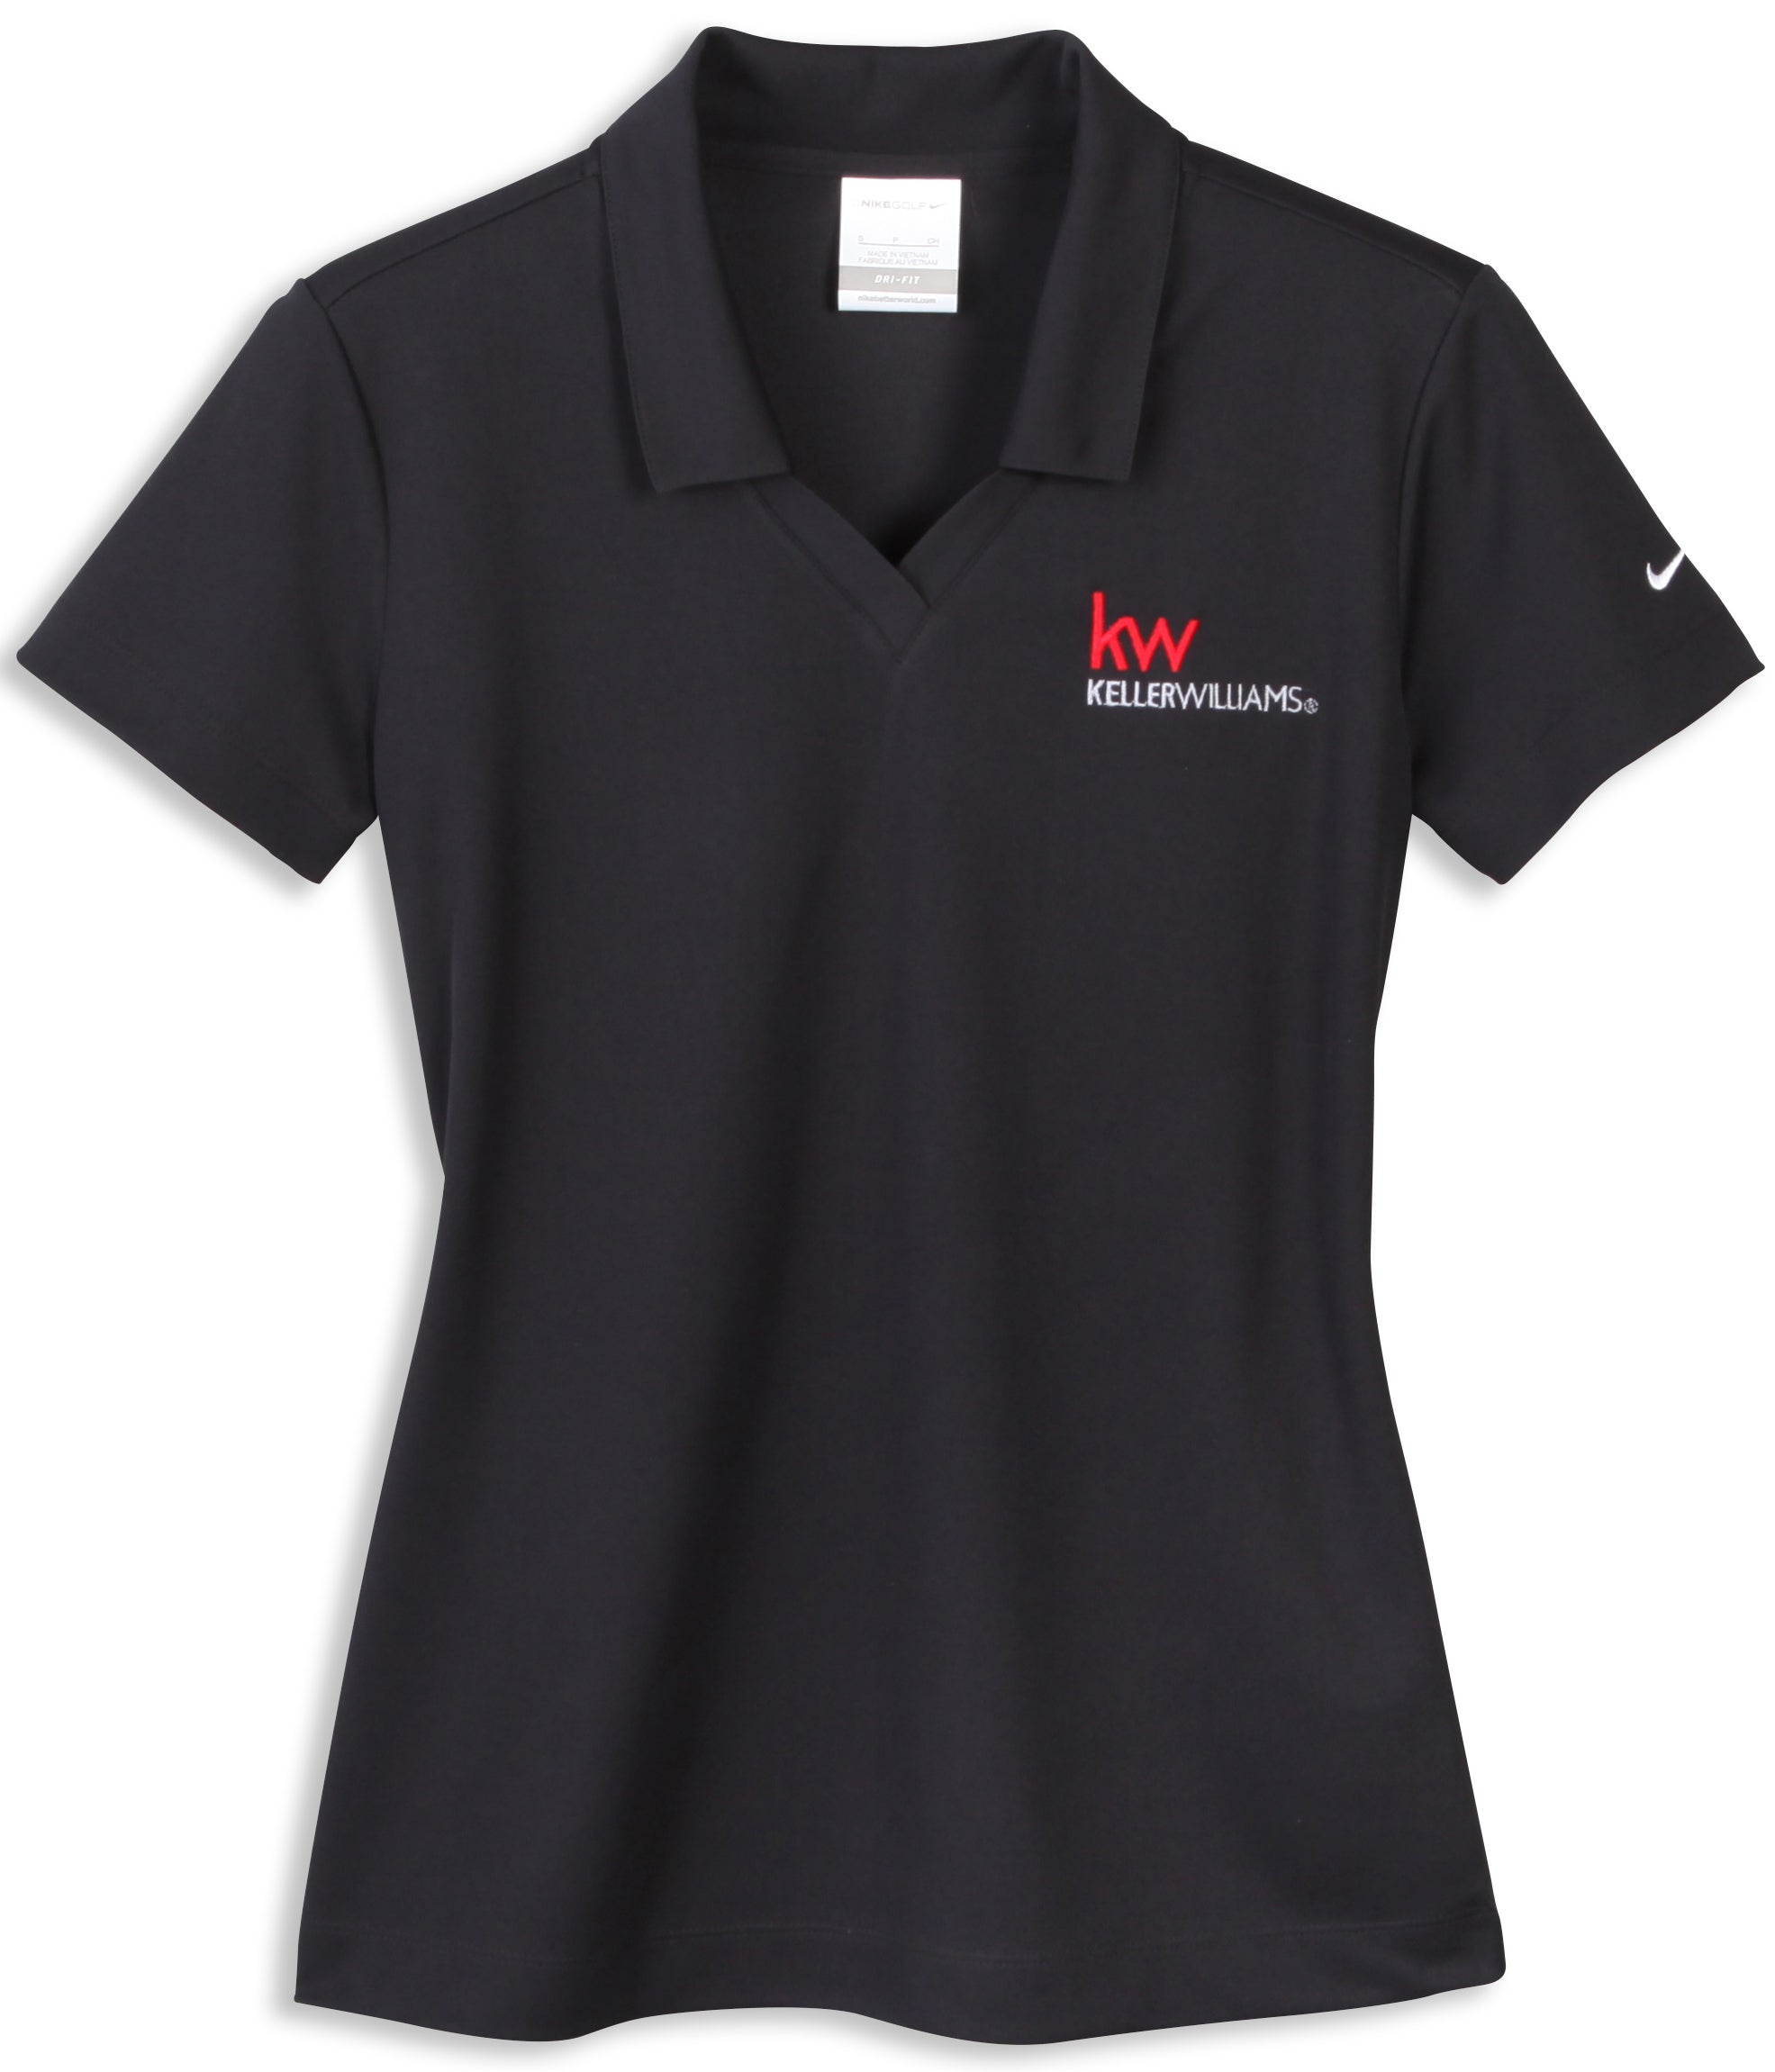 black nike polo with johnny collar and Keller Williams logo in embroidery